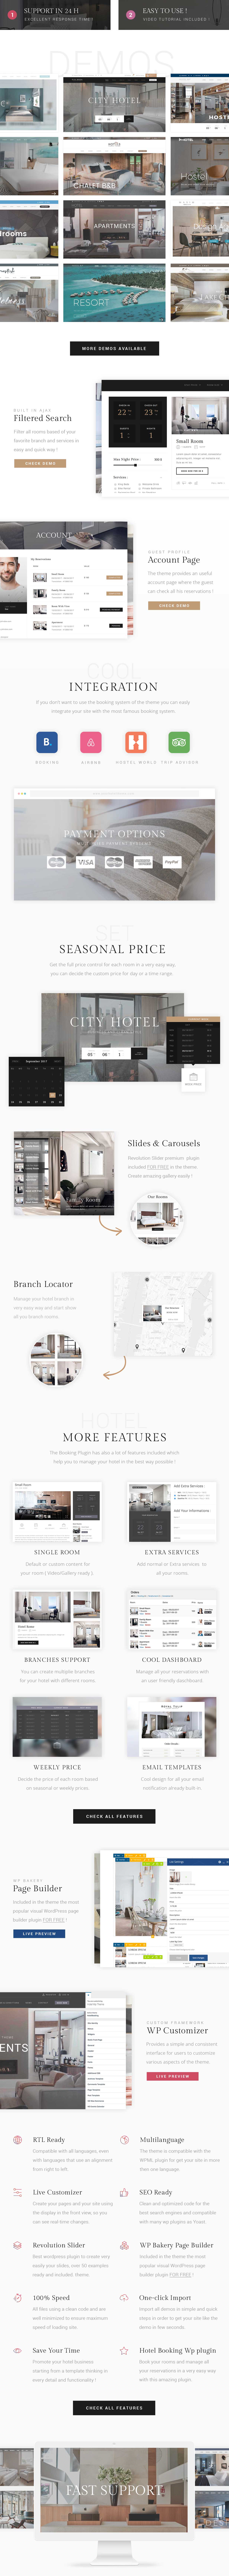 Hotel Booking - Hotel WordPress Theme - 1